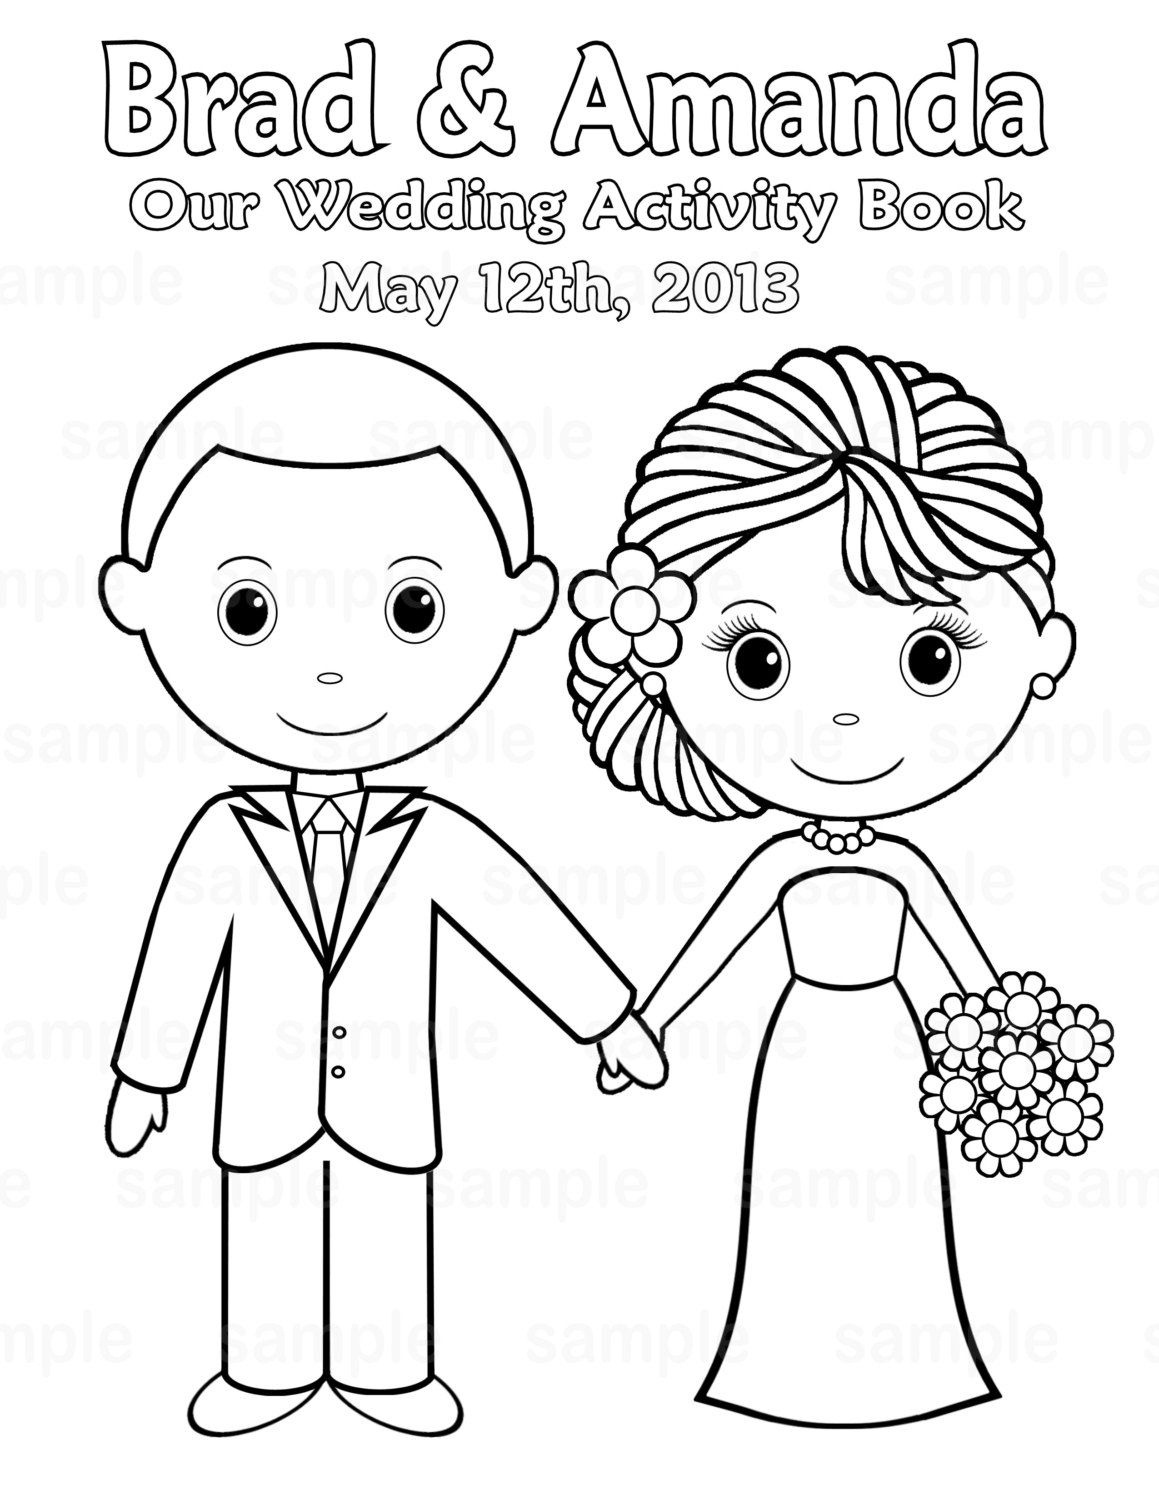 Free Printable Coloring Pictures Wedding | Printable Personalized - Wedding Coloring Book Free Printable